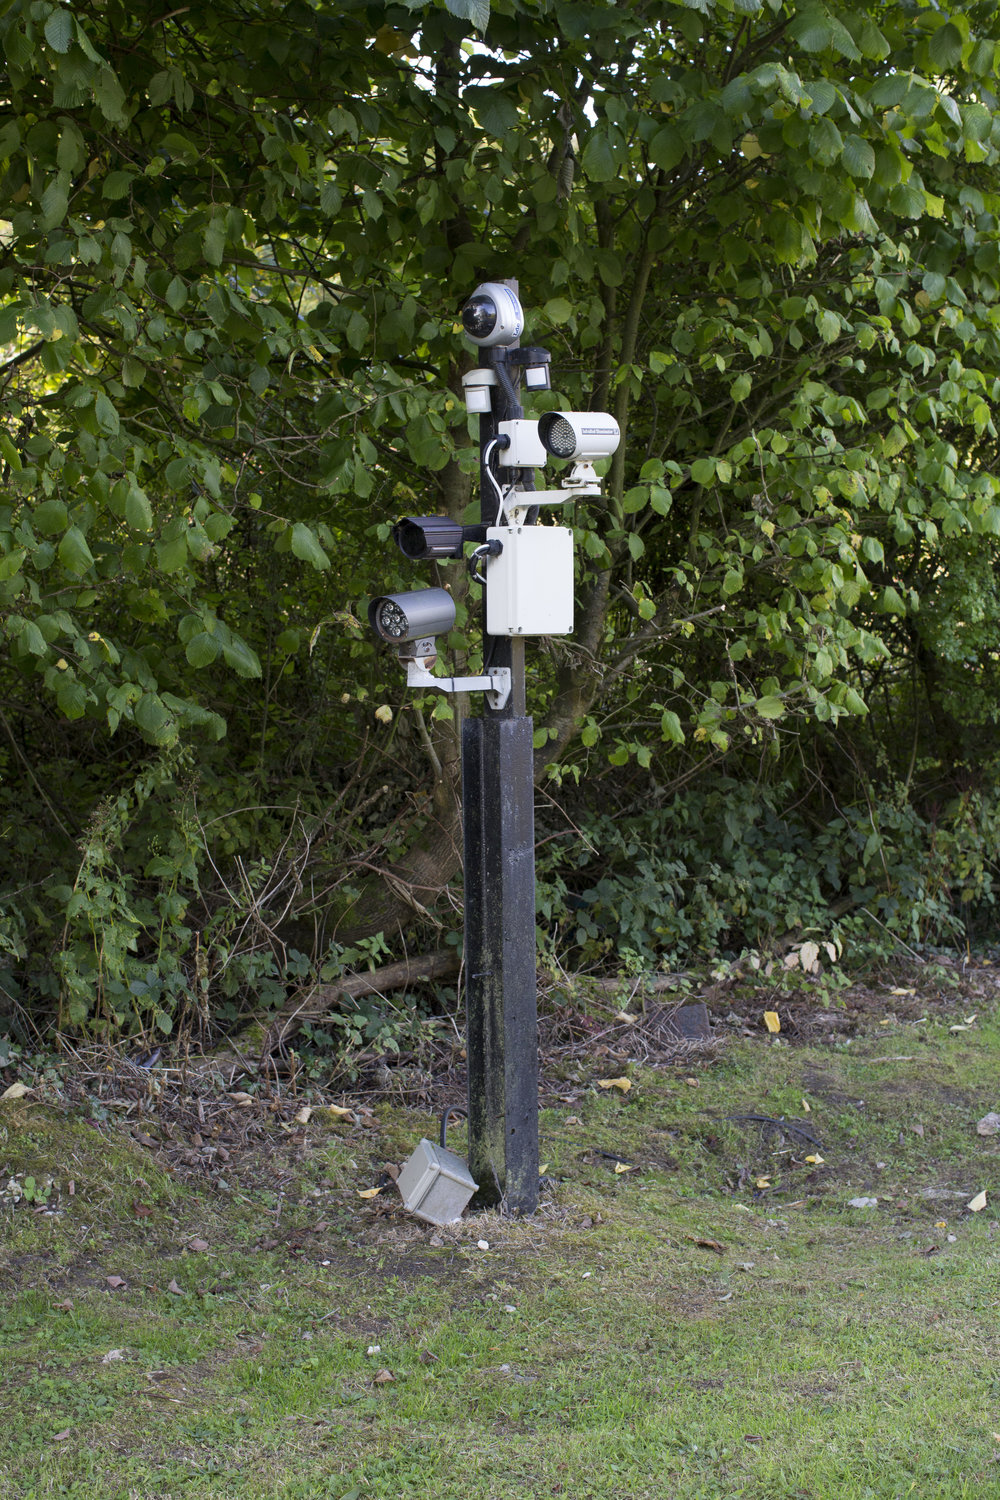 CCTV outside of Corsham Cellars in Wiltshire, which holds $2.2 billion in wine